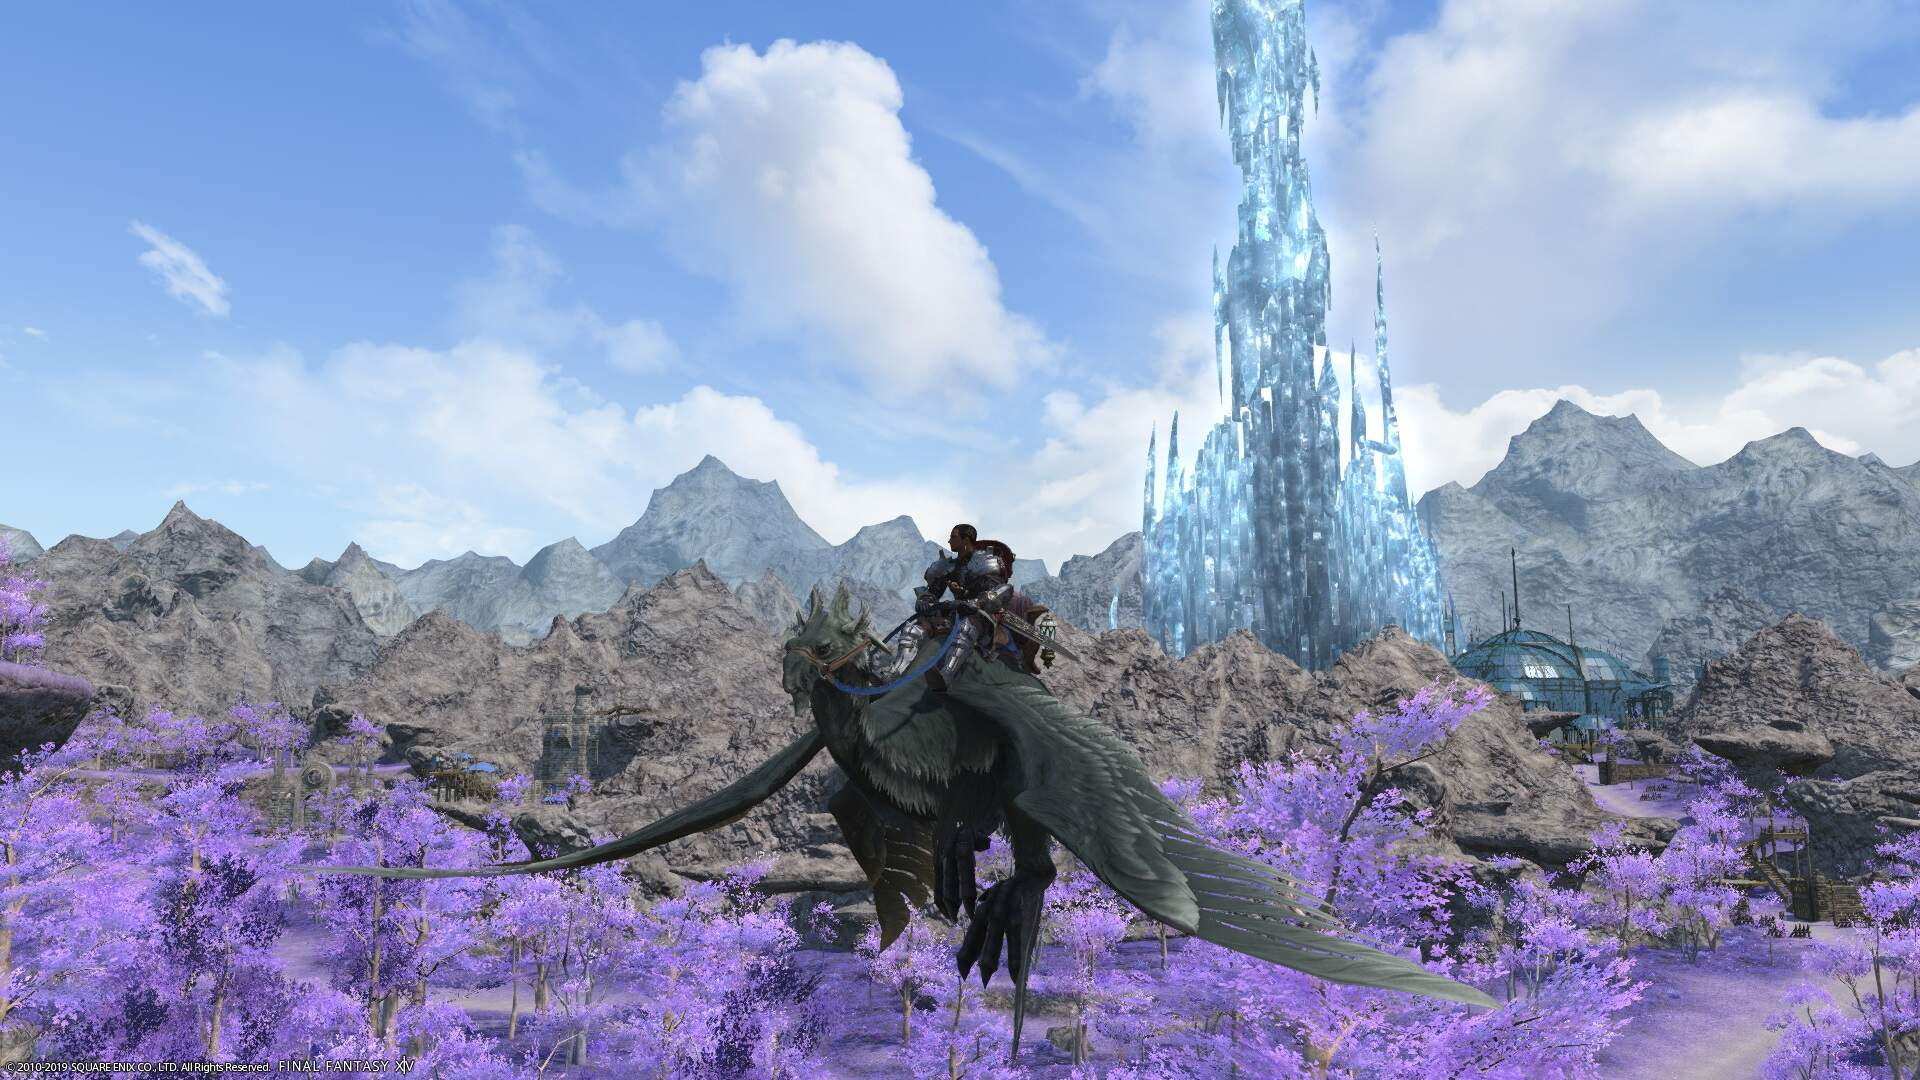 Final Fantasy 14 Shadowbringers - Where to Find All the Aether Currents